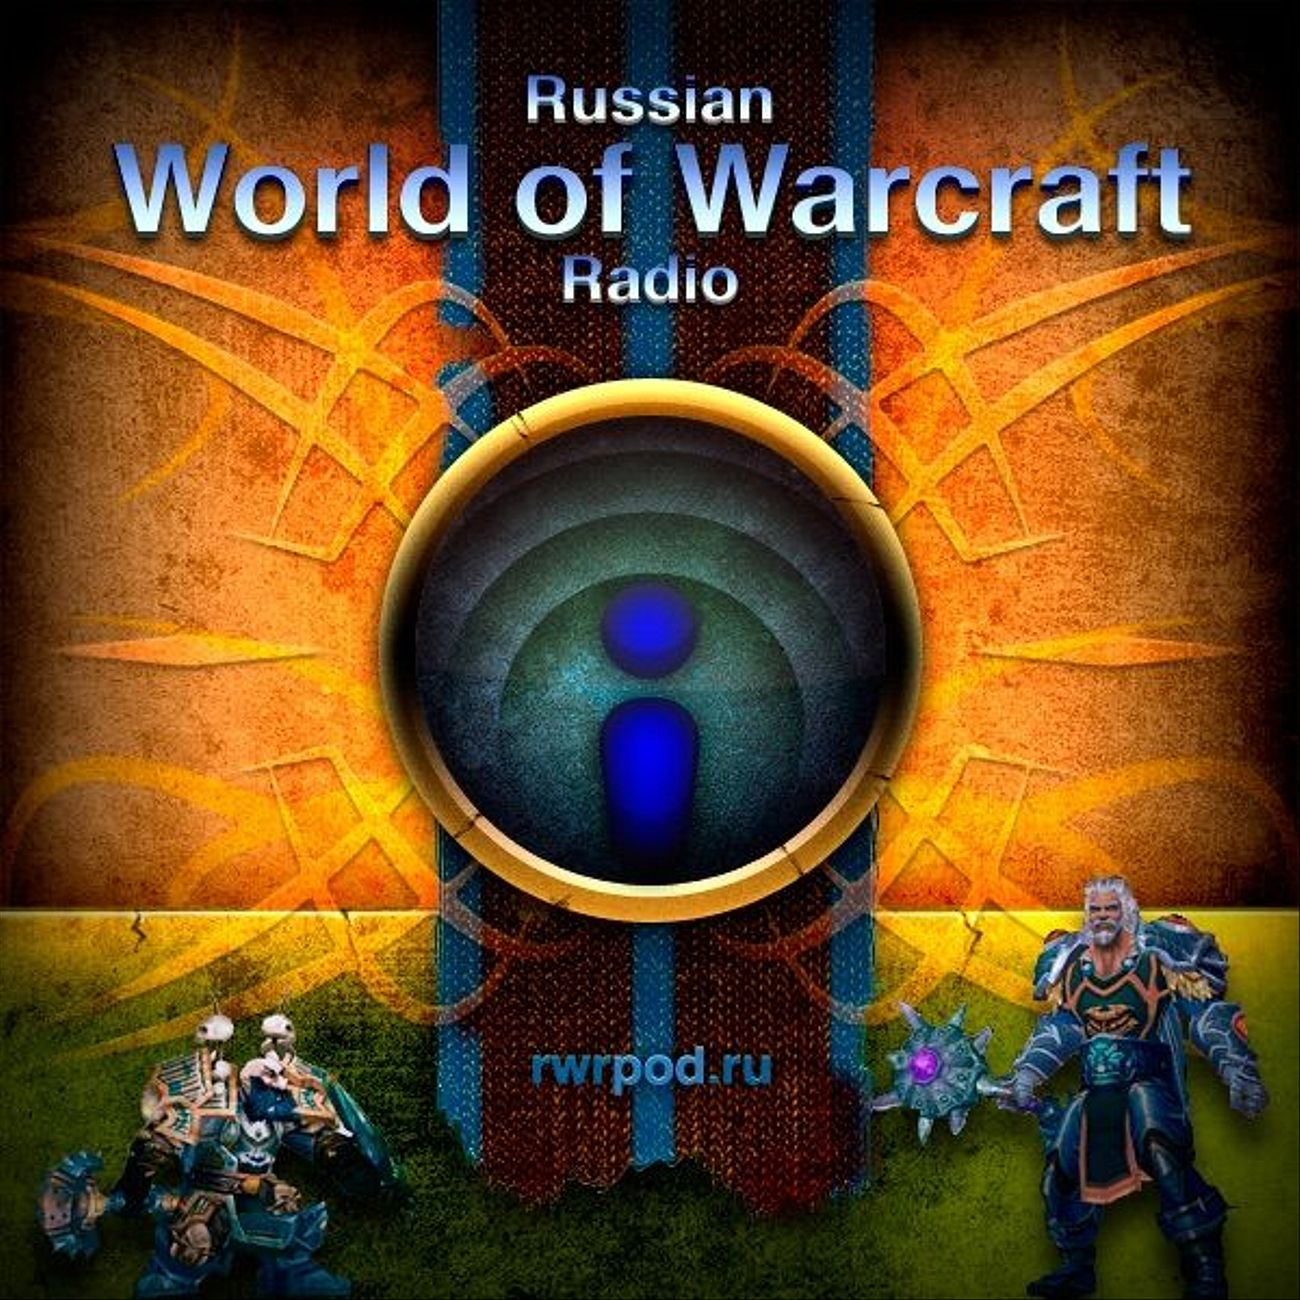 Russian World of Warcraft Radio